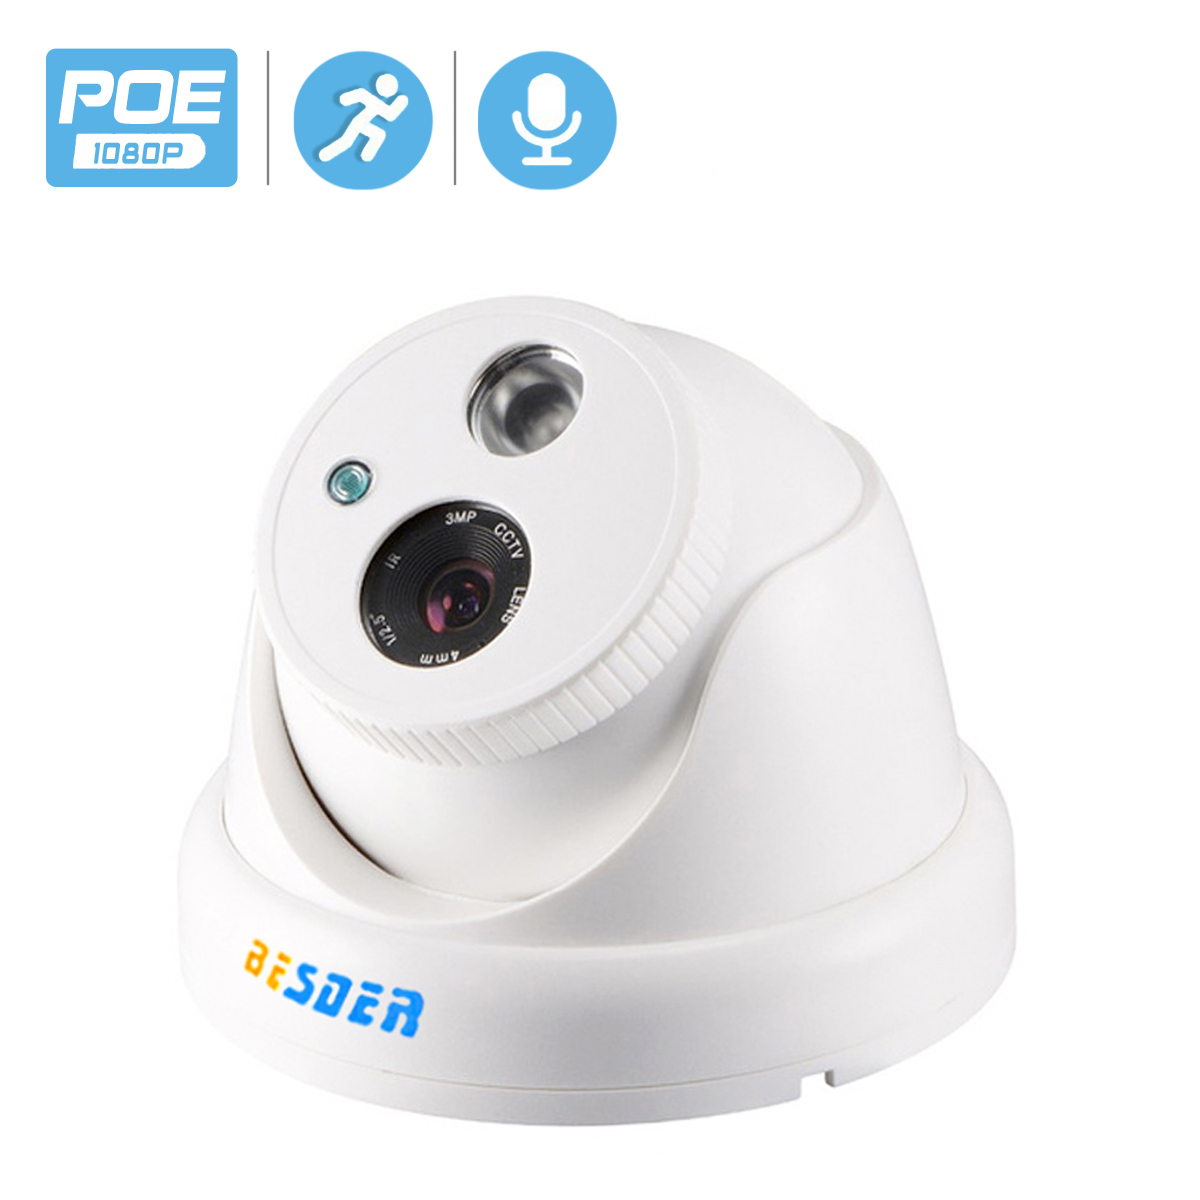 BESDER Internal Audio IP Camera 720P 960P 1080P ( SONY <font><b>IMX291</b></font> ) Indoor Dome Surveillance Video Camera IP DC 12V 48V PoE Optional image